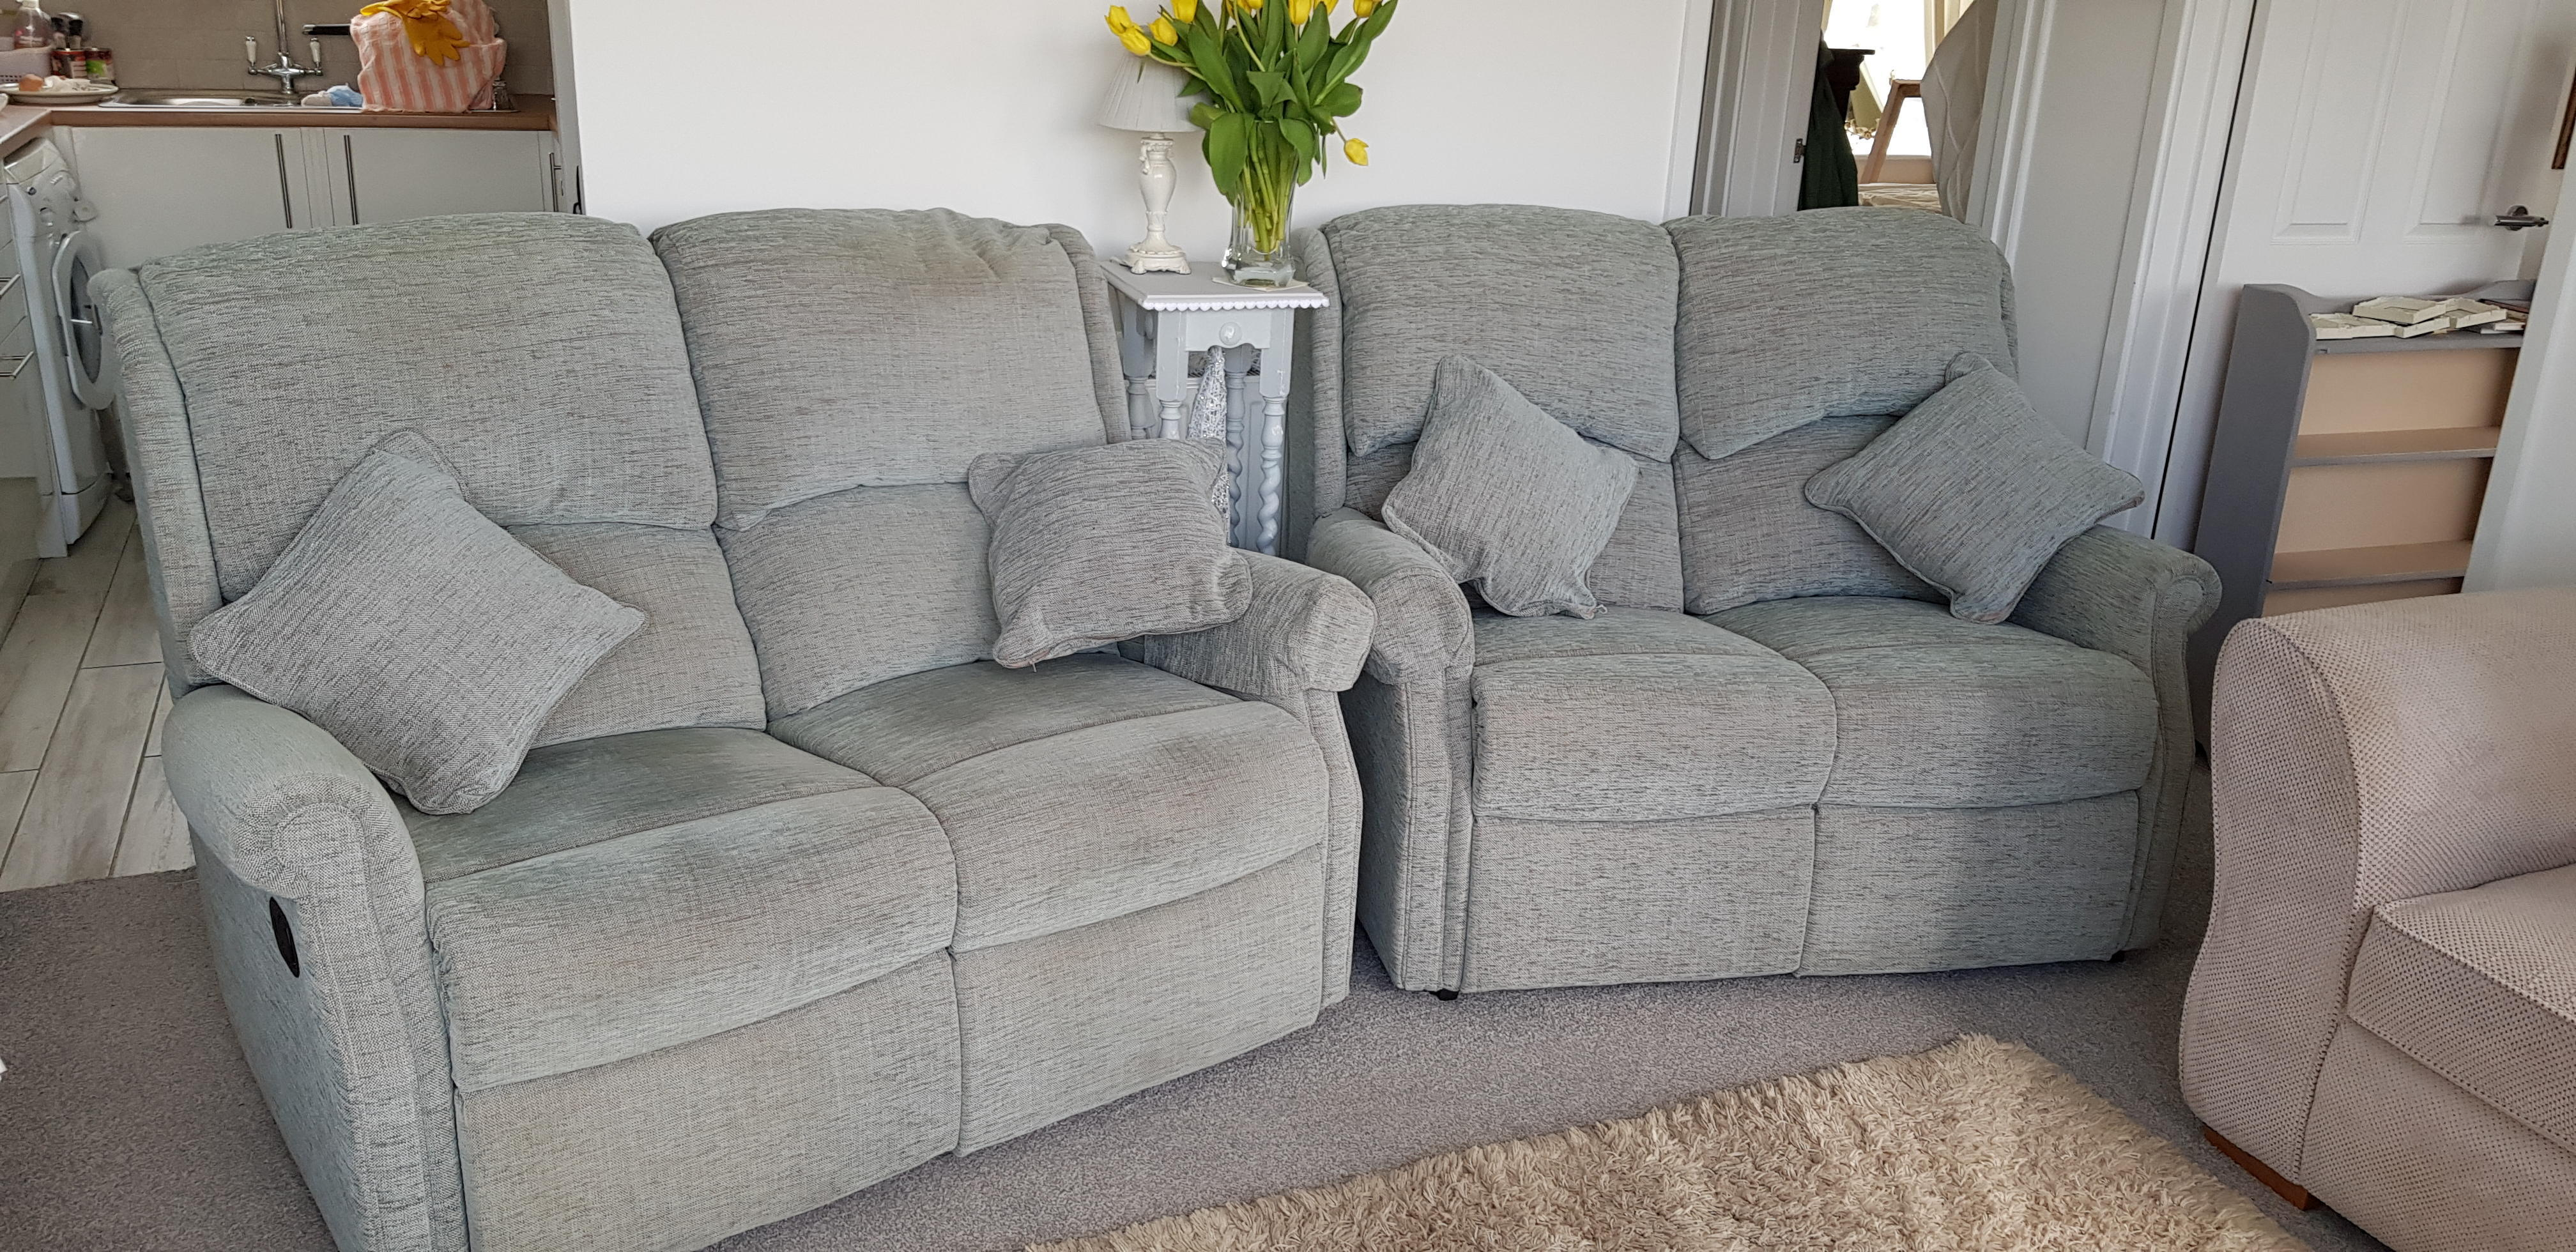 Swell Hsl 2 Two Seater Sofas One Being A Recliner In Eastbourne Pabps2019 Chair Design Images Pabps2019Com